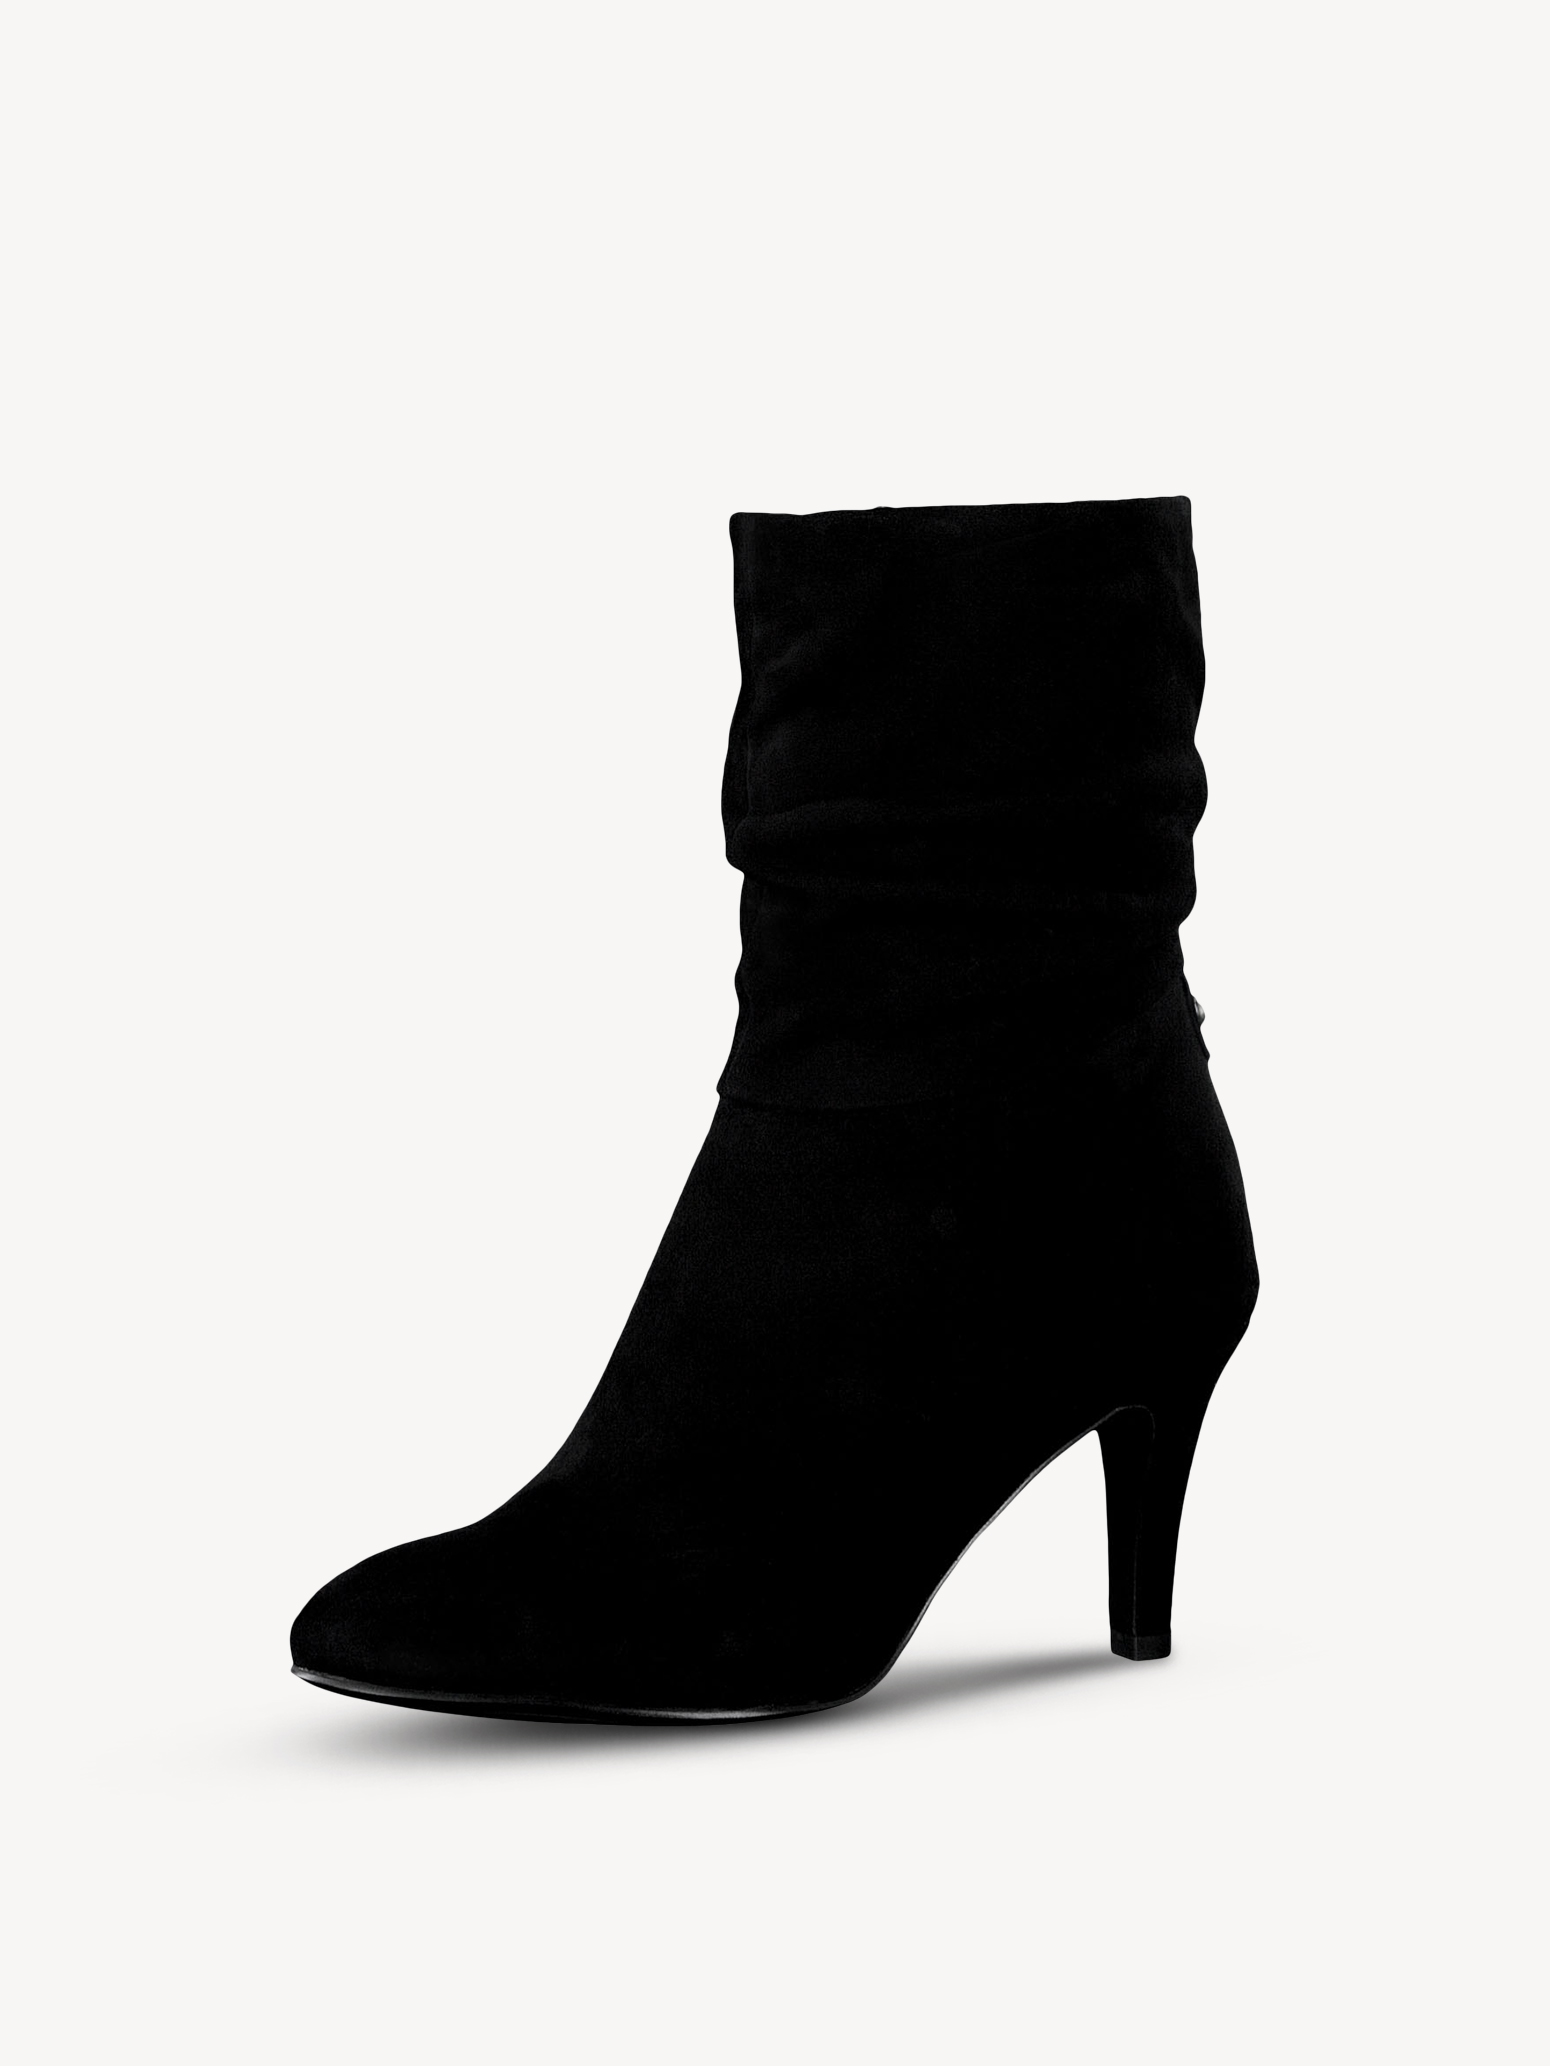 Leather Bootie - black, BLACK, hi-res